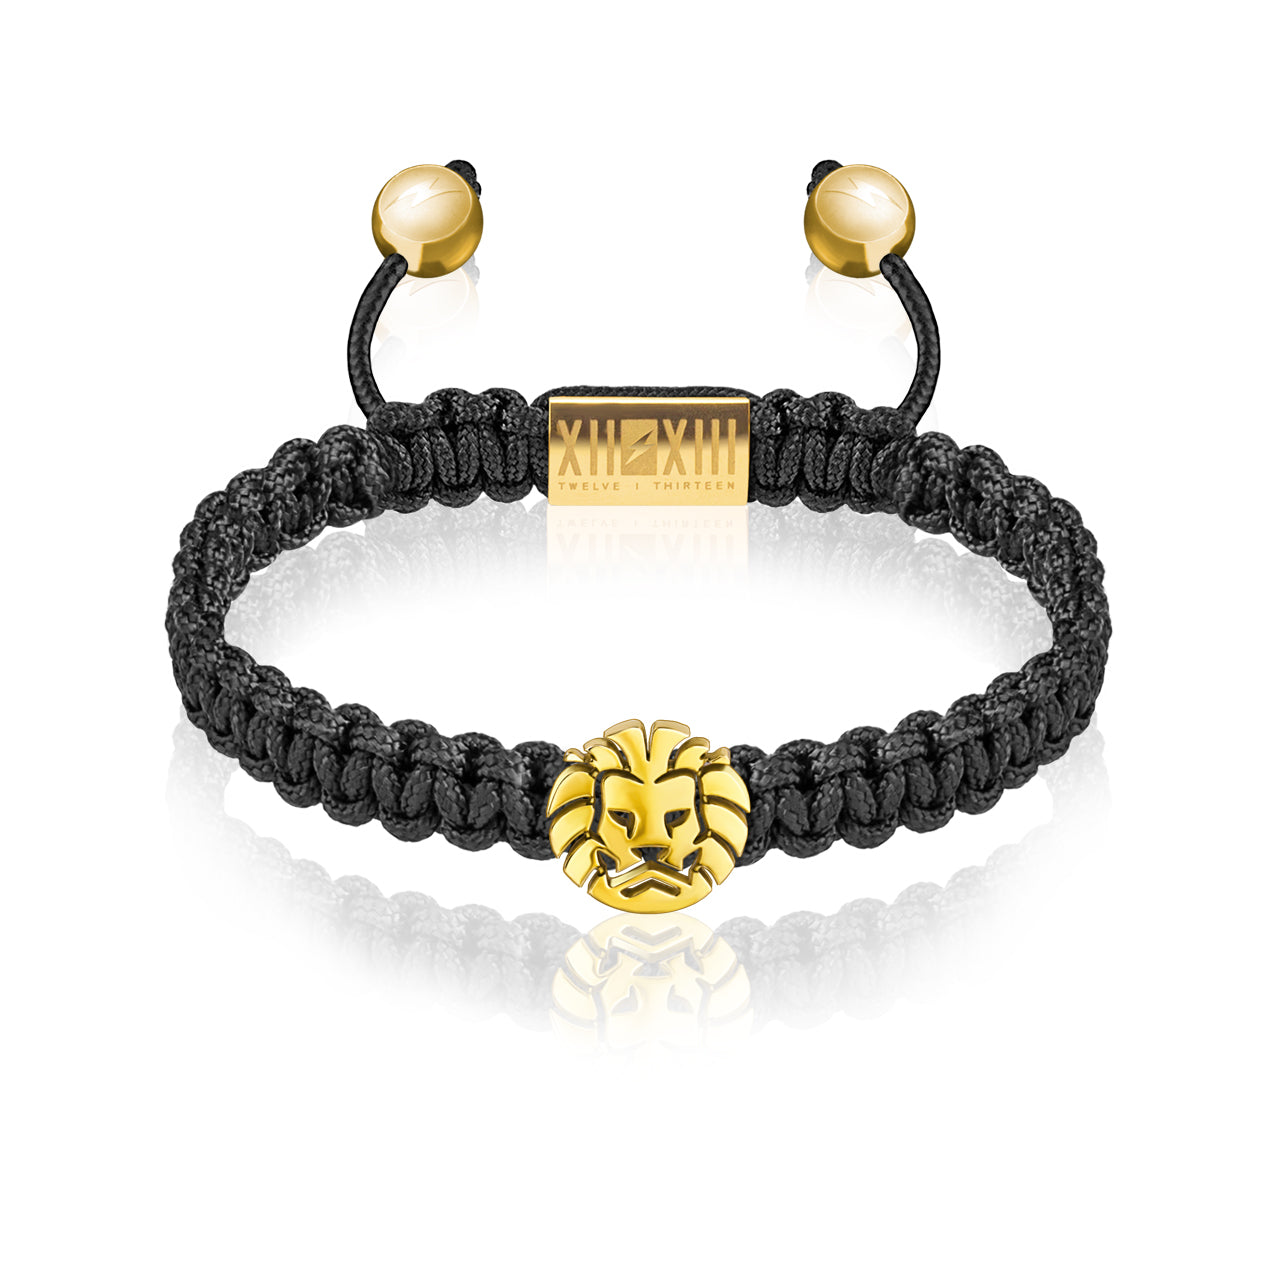 WATCHANISH by Twelve Thirteen Jewelry macramé braided bracelet - Black/Polished Yellow Gold